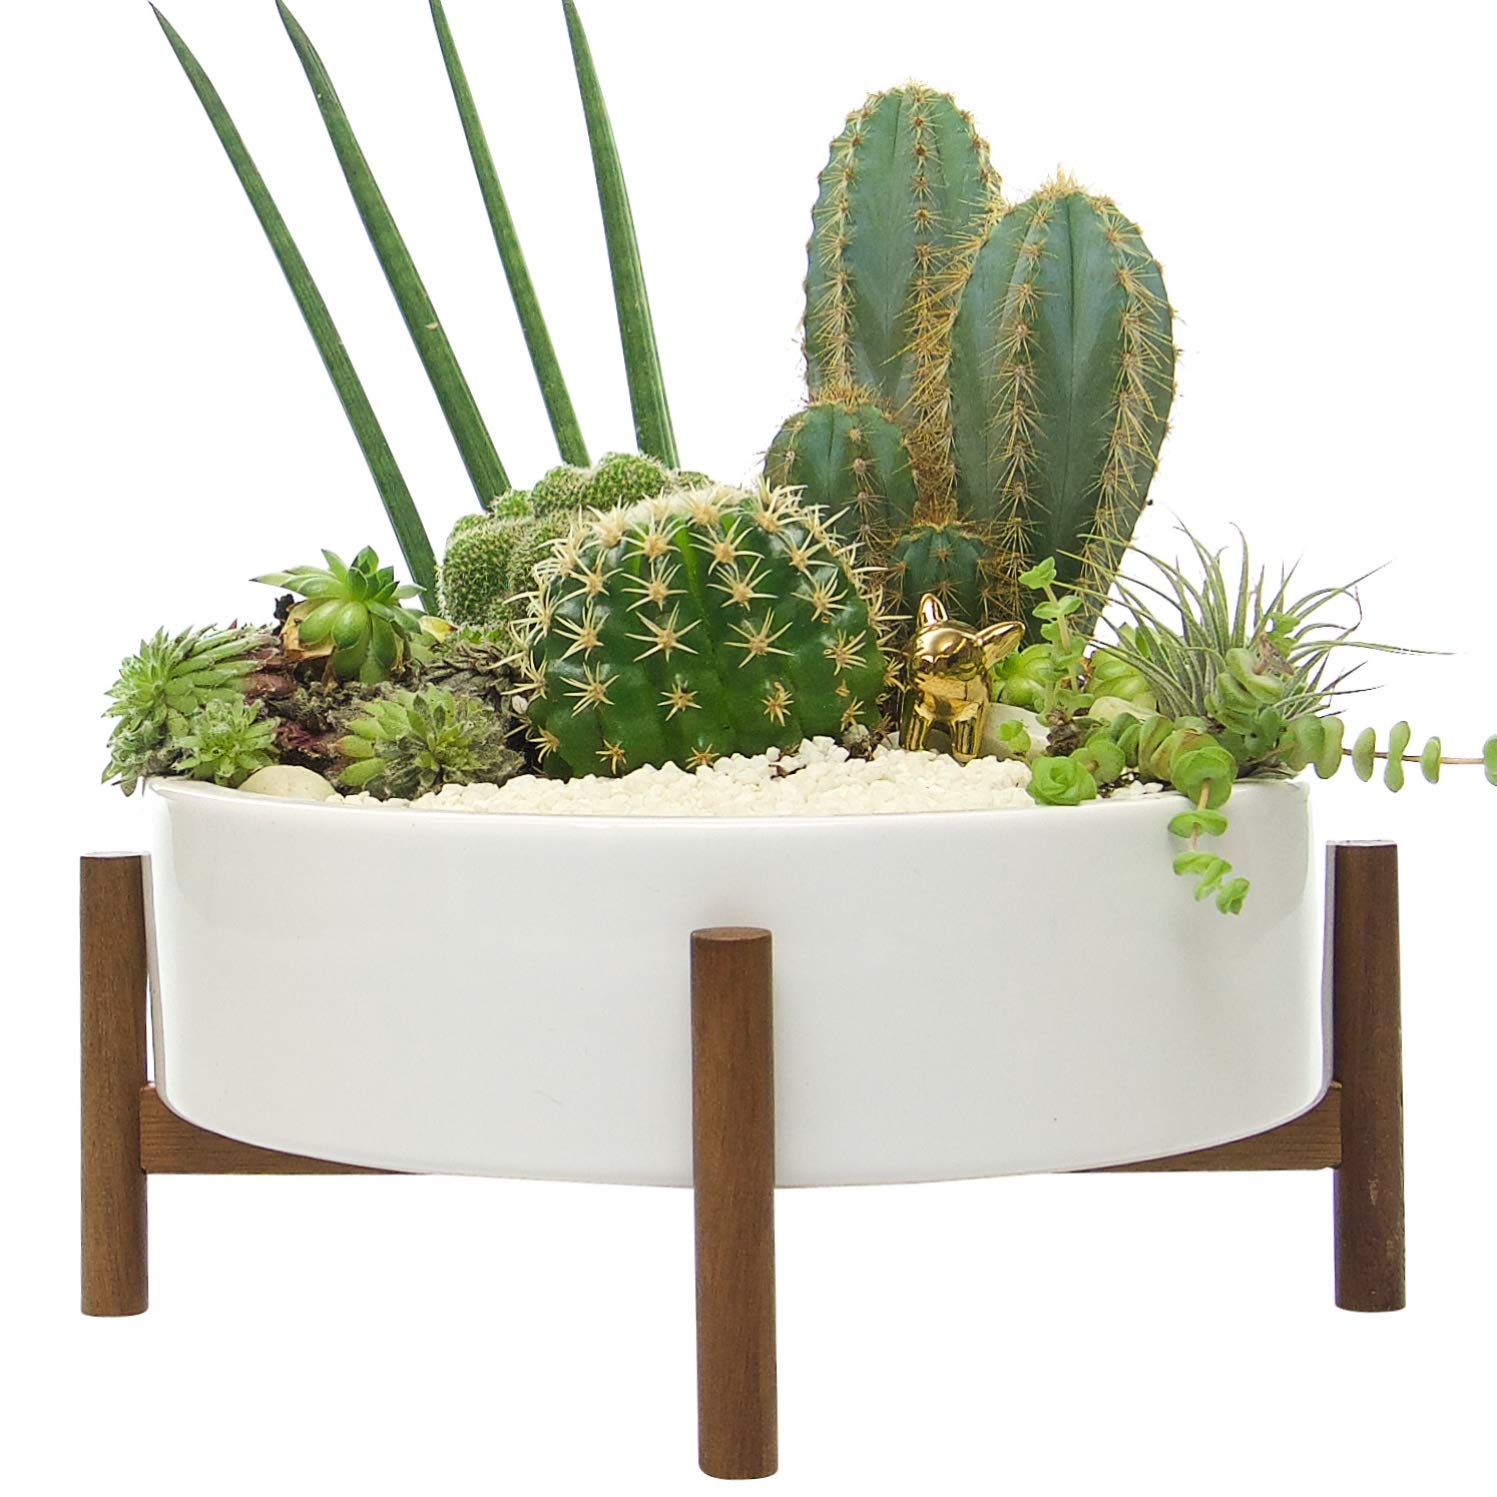 Mid Century Large Round Succulent Planter Bowl | 10 Inch White Ceramic Pot with Wood Stand | Succulent Garden Shallow Pot | Dining Table Centerpiece | Cactus and Plant Container with Drainage | Indoor